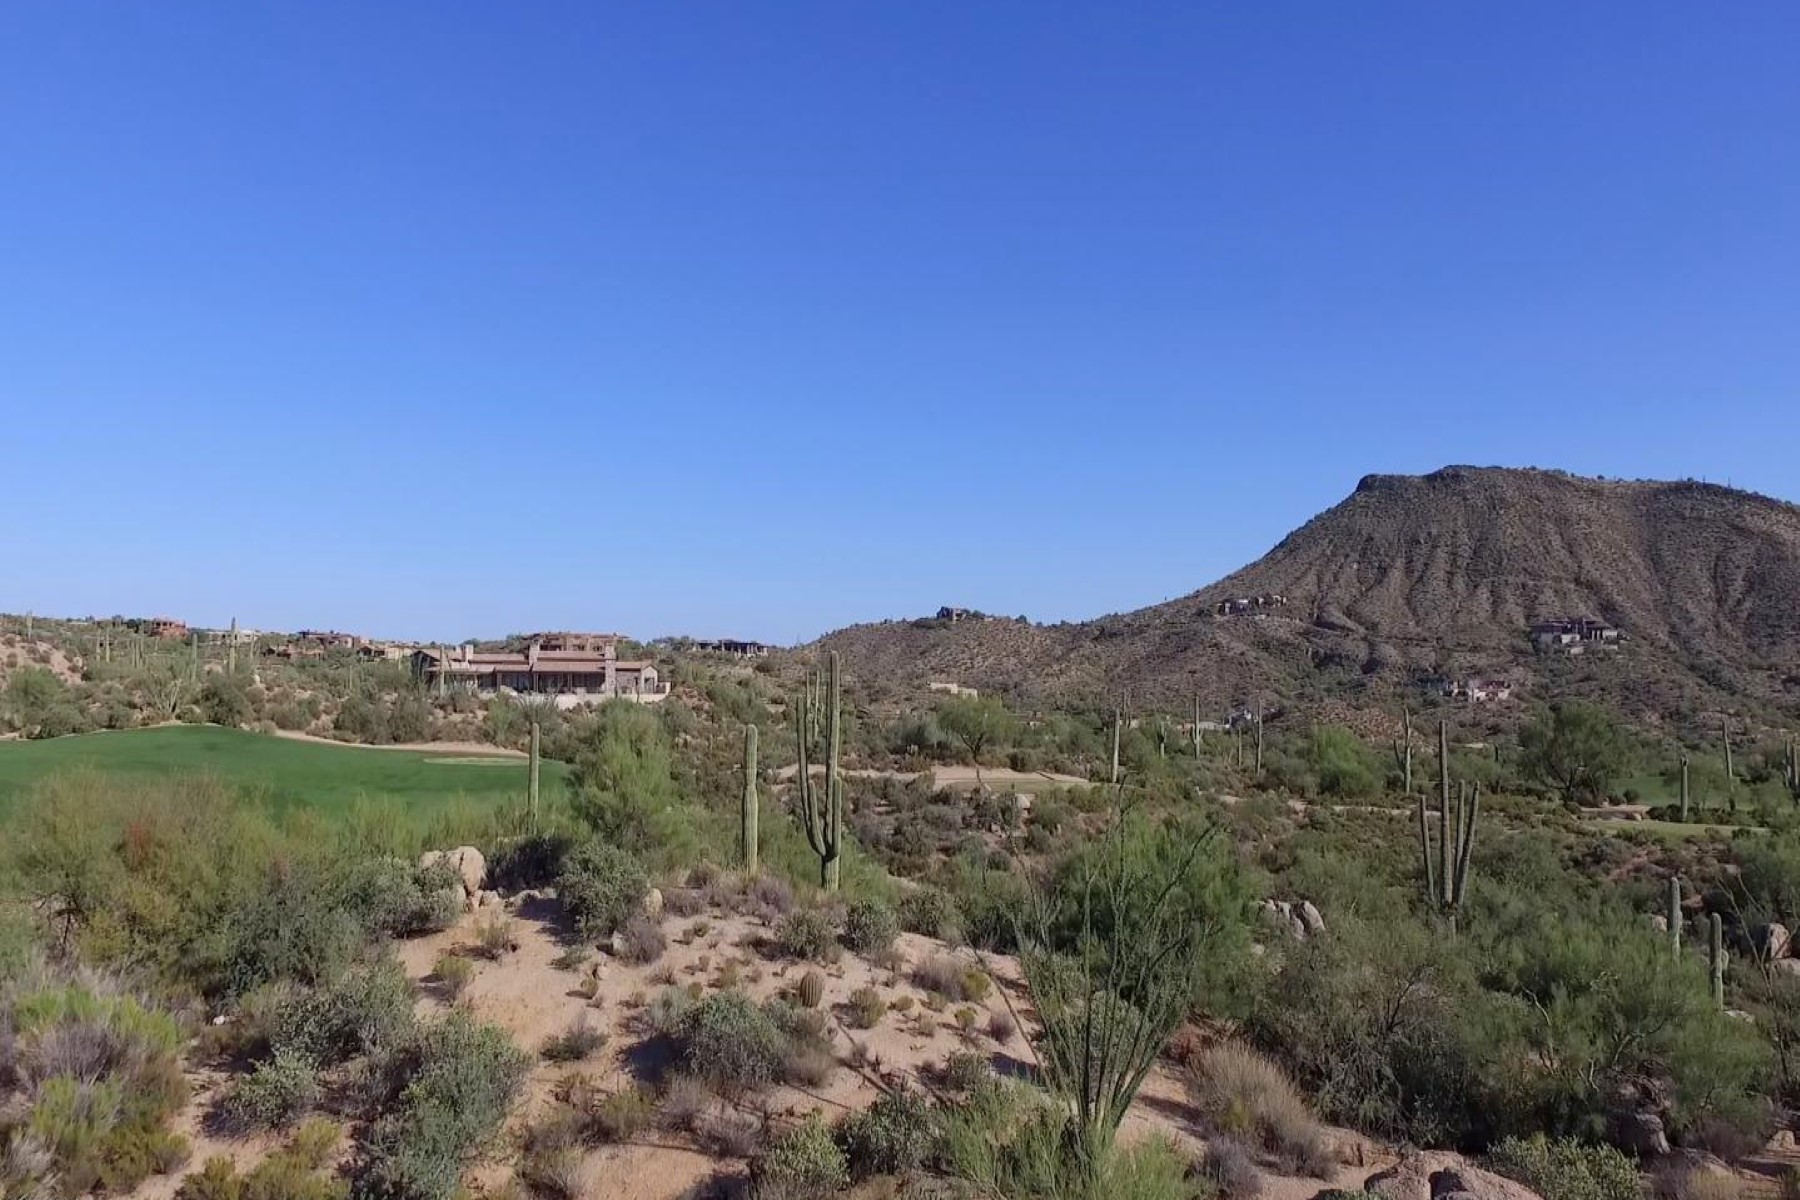 Земля для того Продажа на Fabulous 1.4 acre lot in Saguaro Forest 40790 N 94th St #272, Scottsdale, Аризона, 85262 Соединенные Штаты